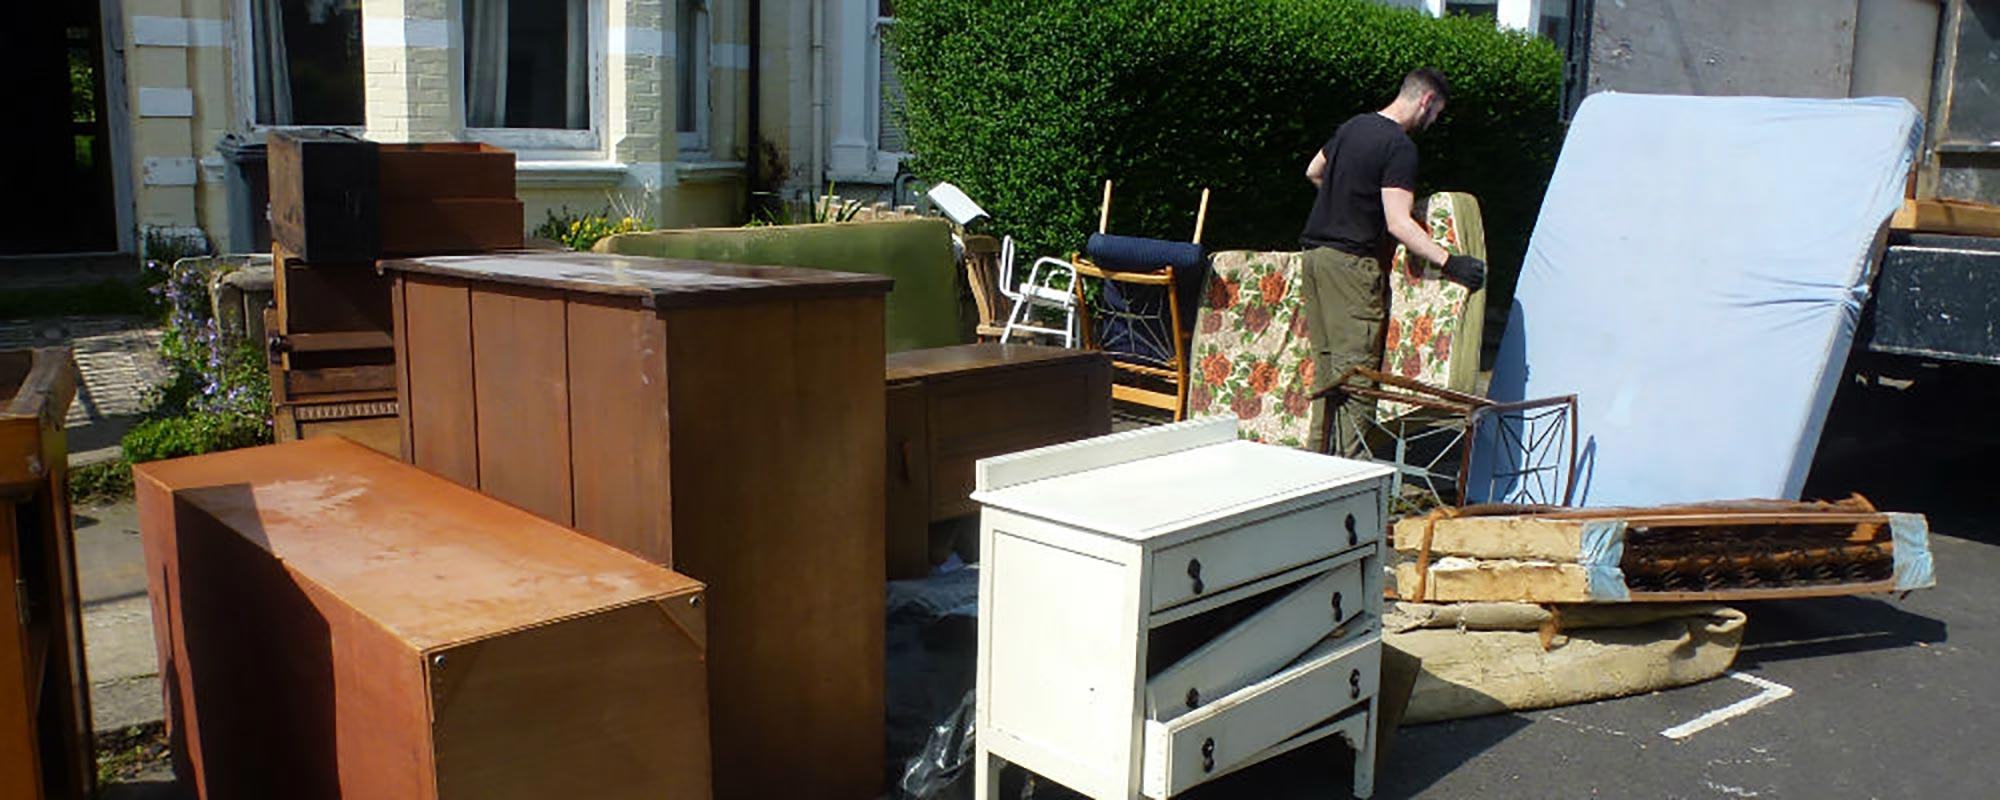 Furniture Disposal London London Furniture Disposal Furniture